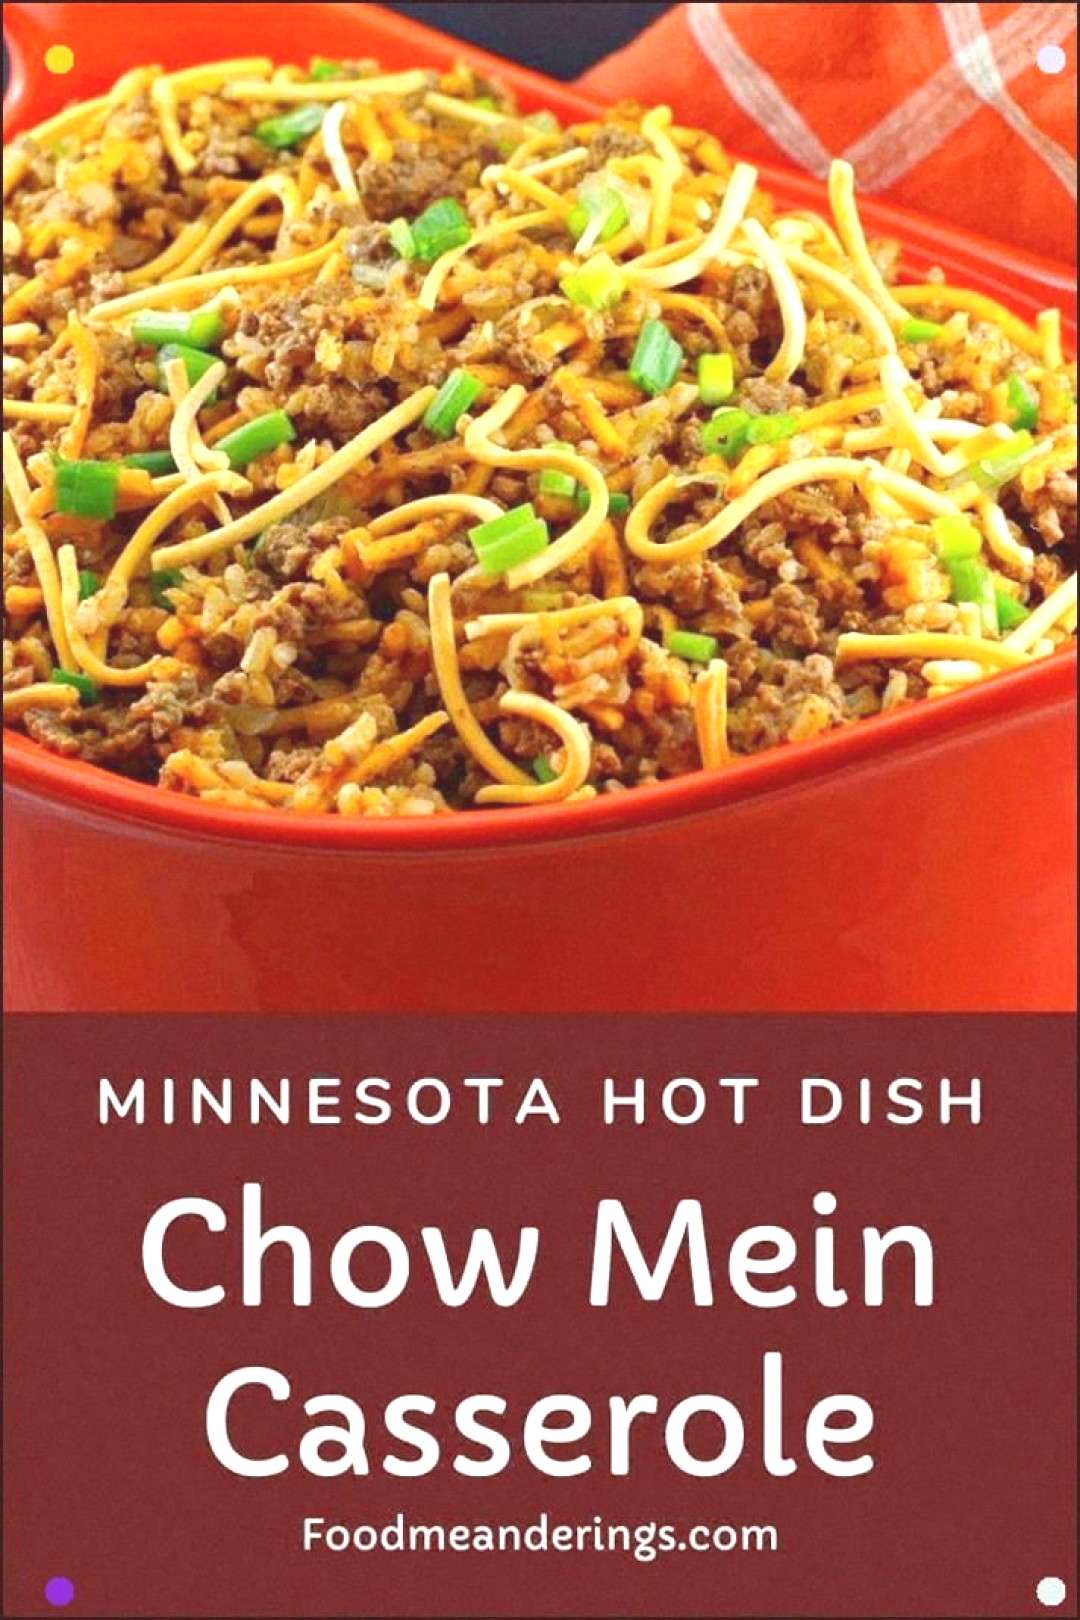 This Chow Mein Casserole Is Also Known By The Name Minnesota Hot Dish. It's A Mid-Western Classic C